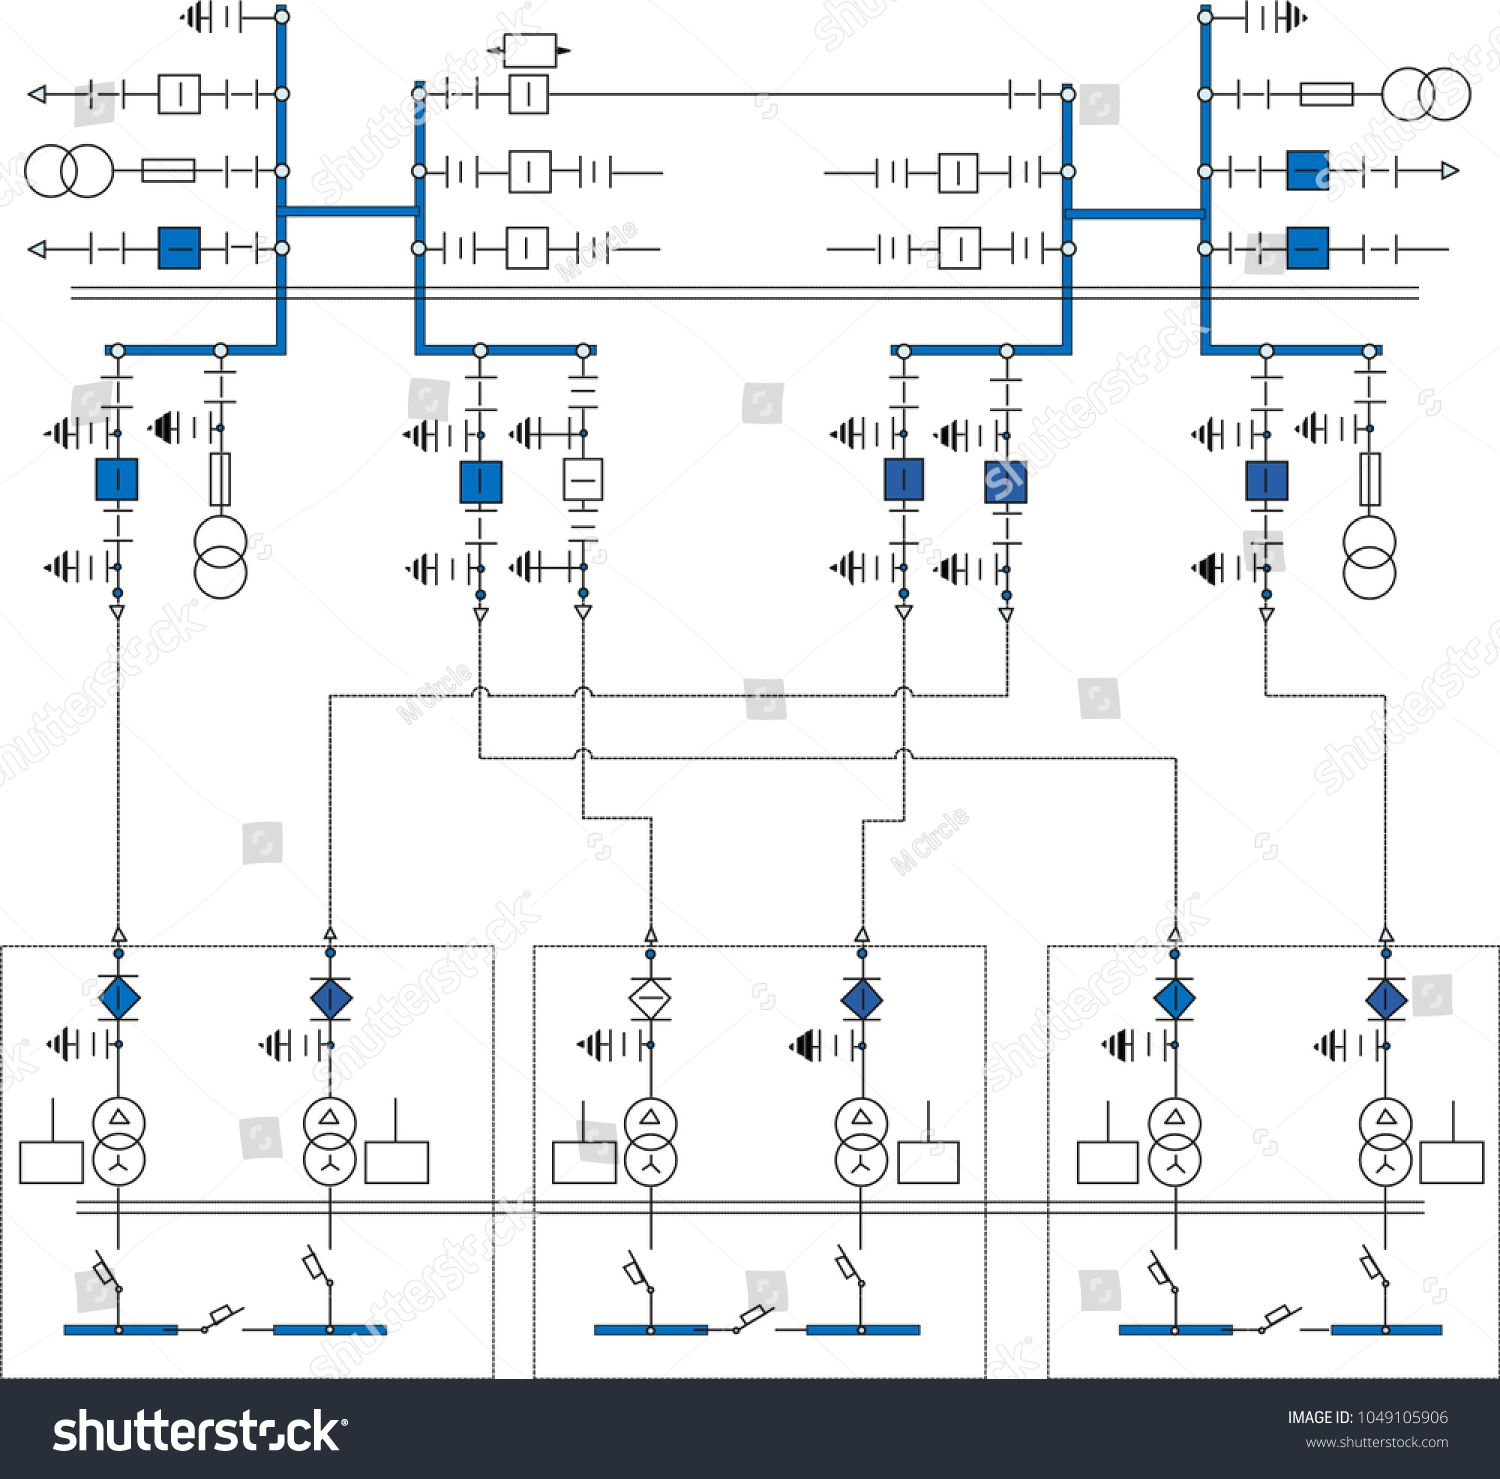 hight resolution of electric wiring diagram for power transformers